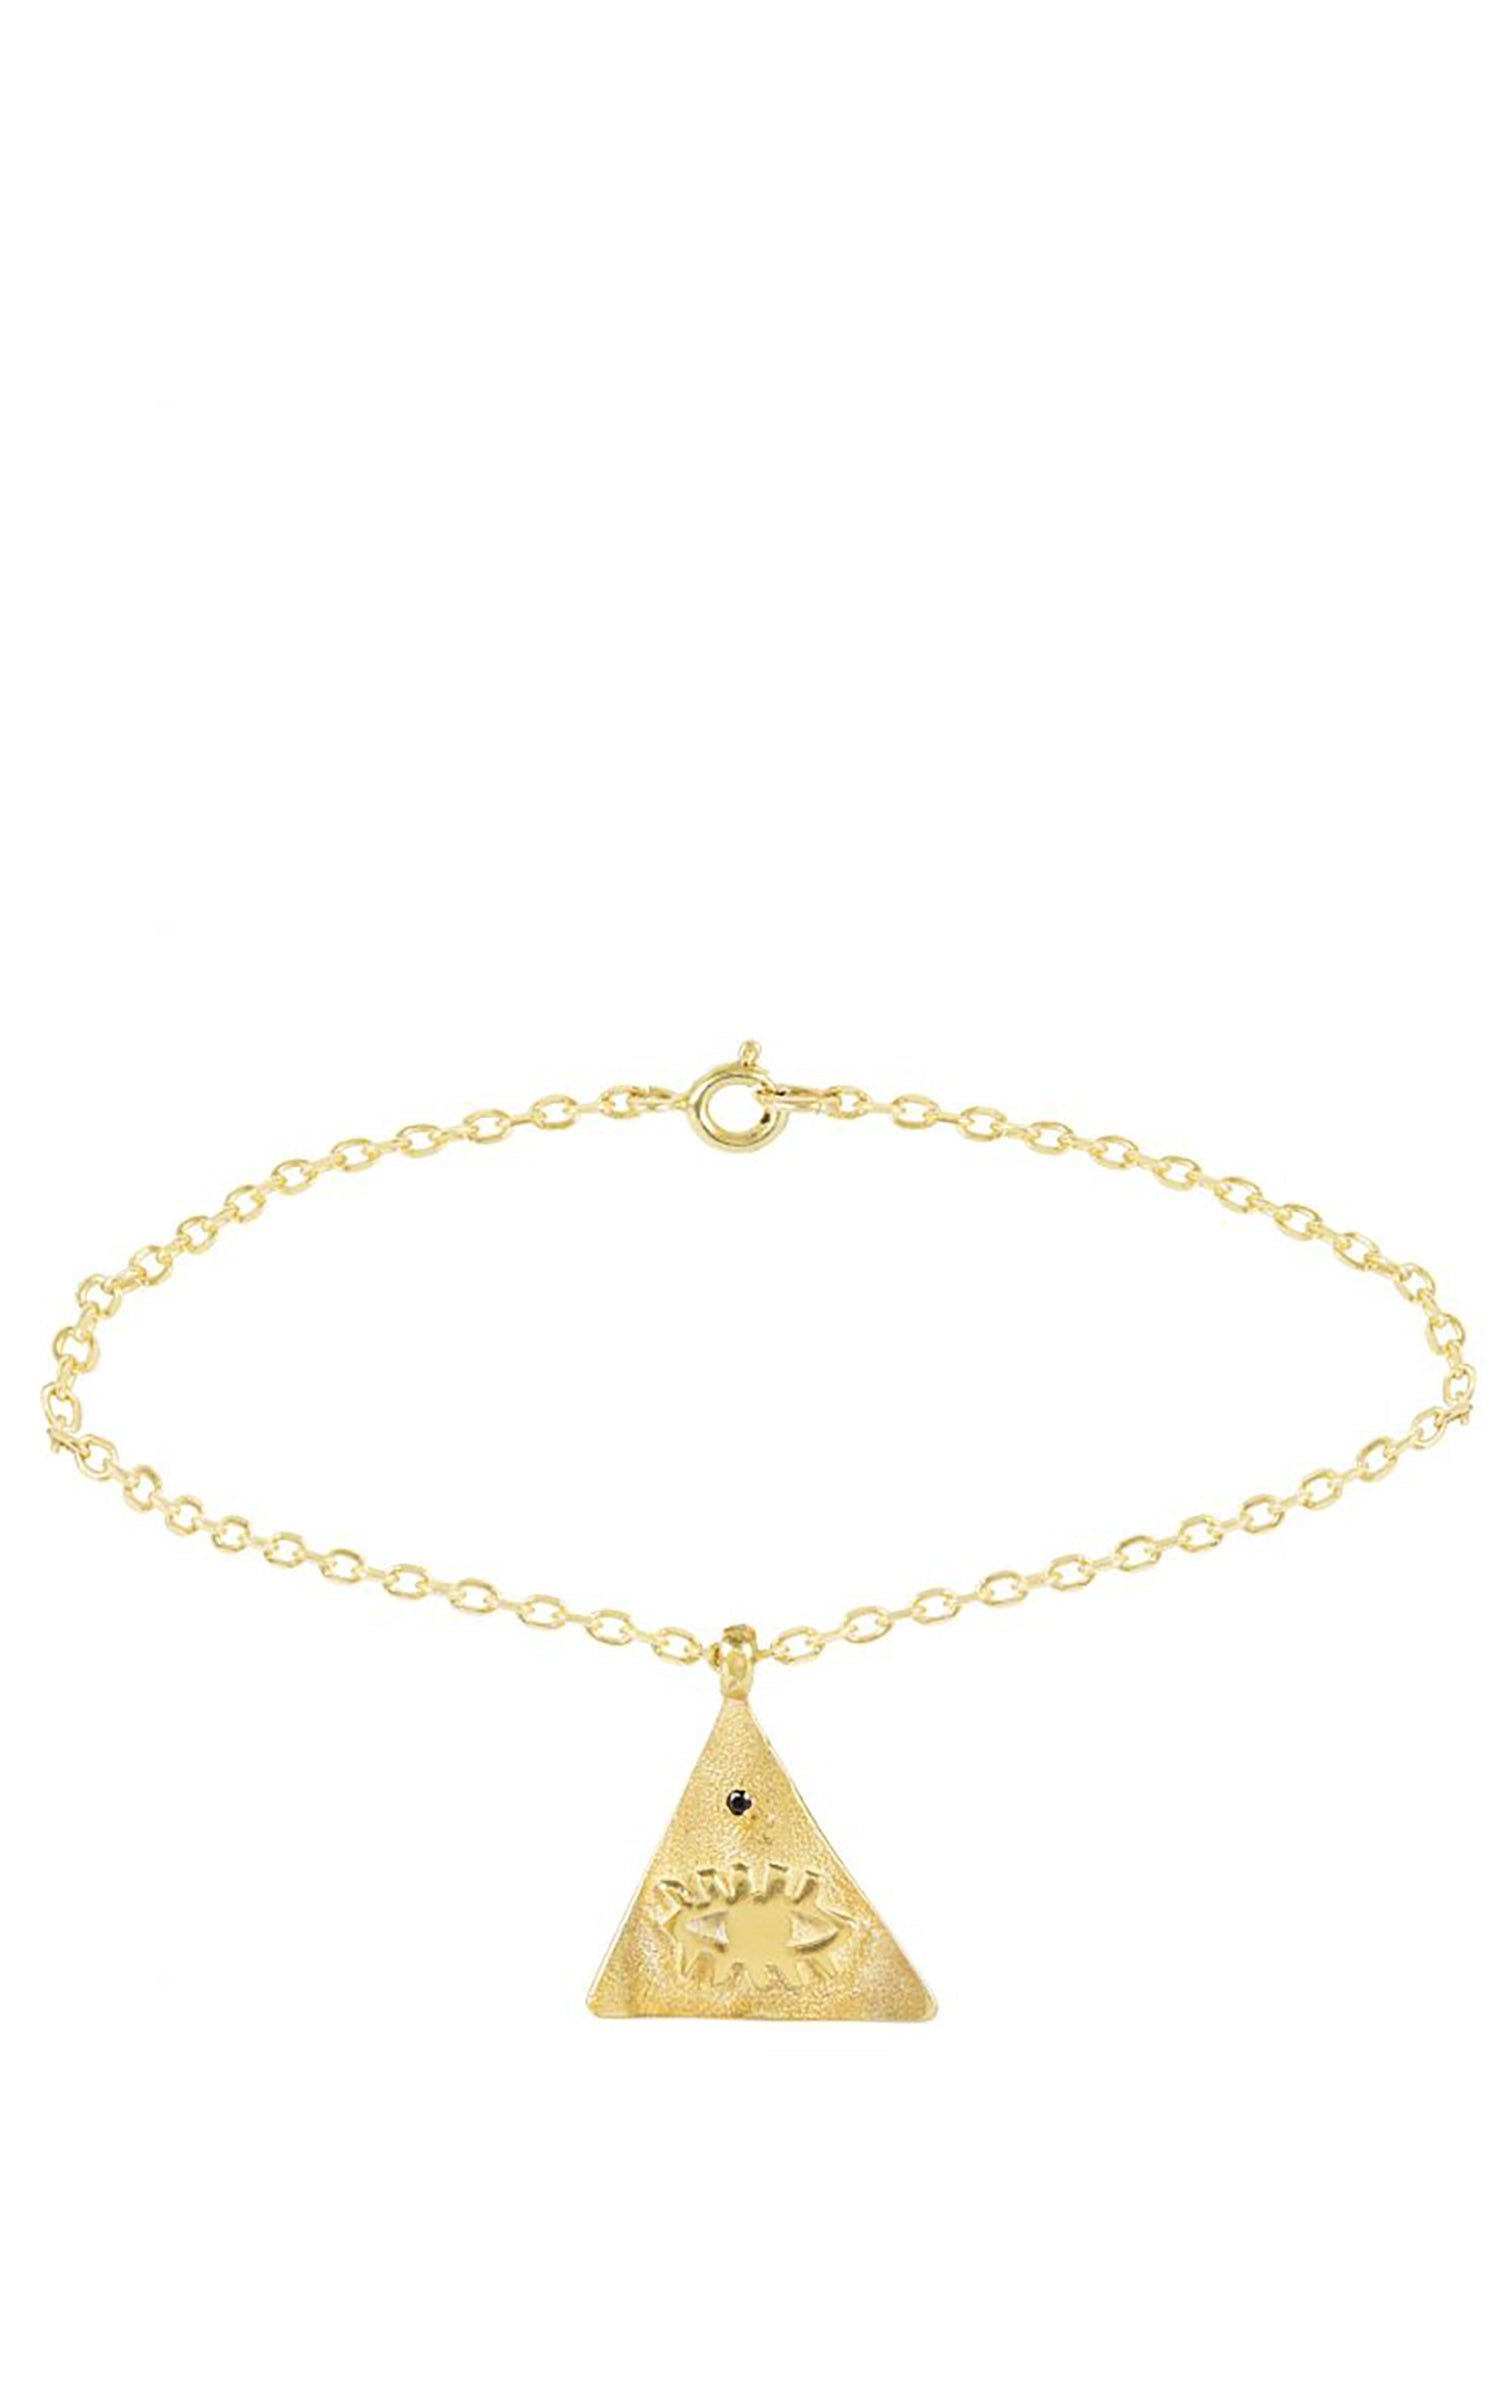 Kressida Small Pyramis Gold plated Bracelet - Red Stone